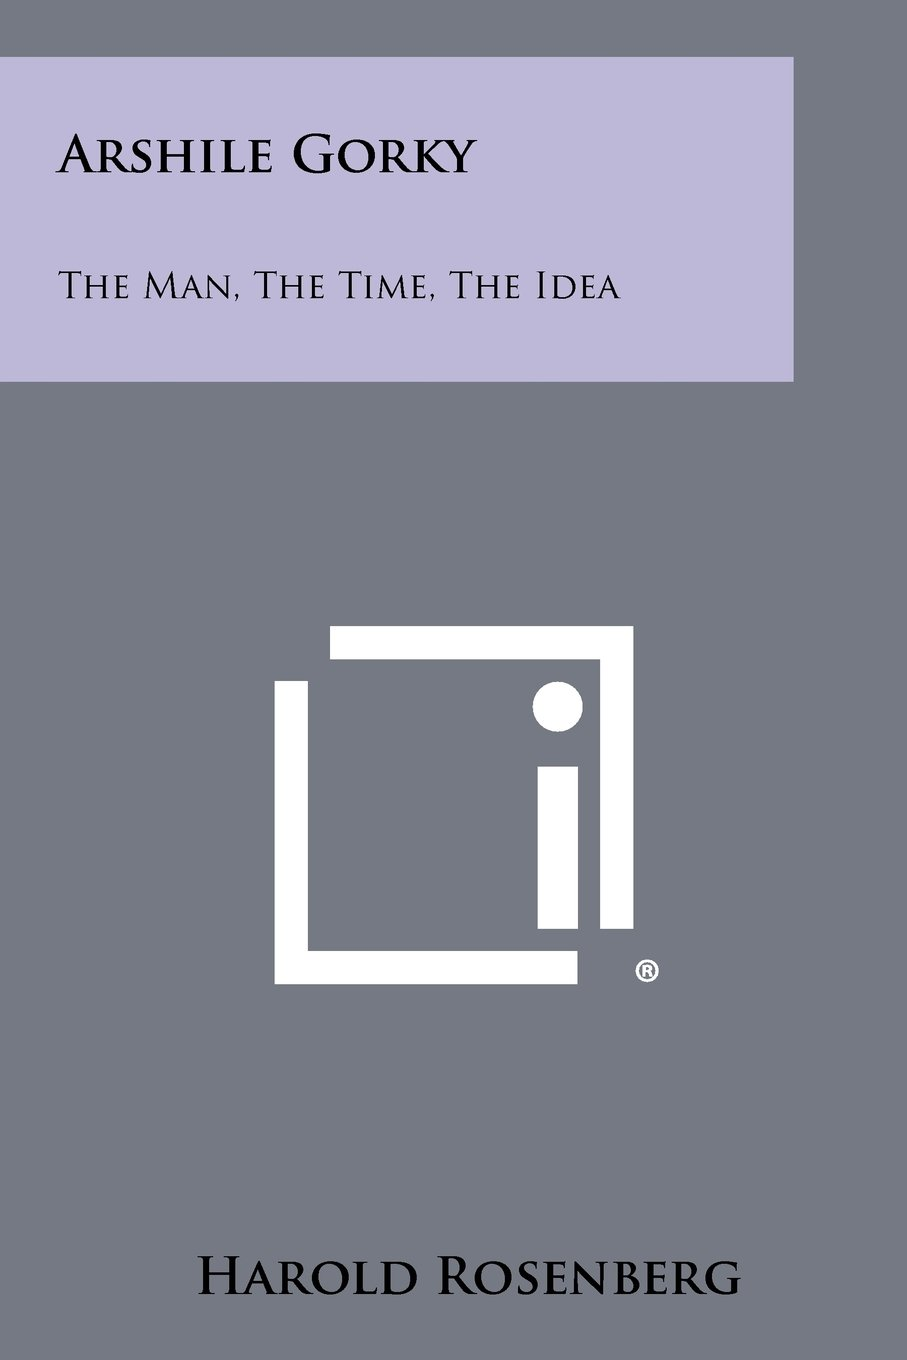 Download Arshile Gorky: The Man, The Time, The Idea PDF